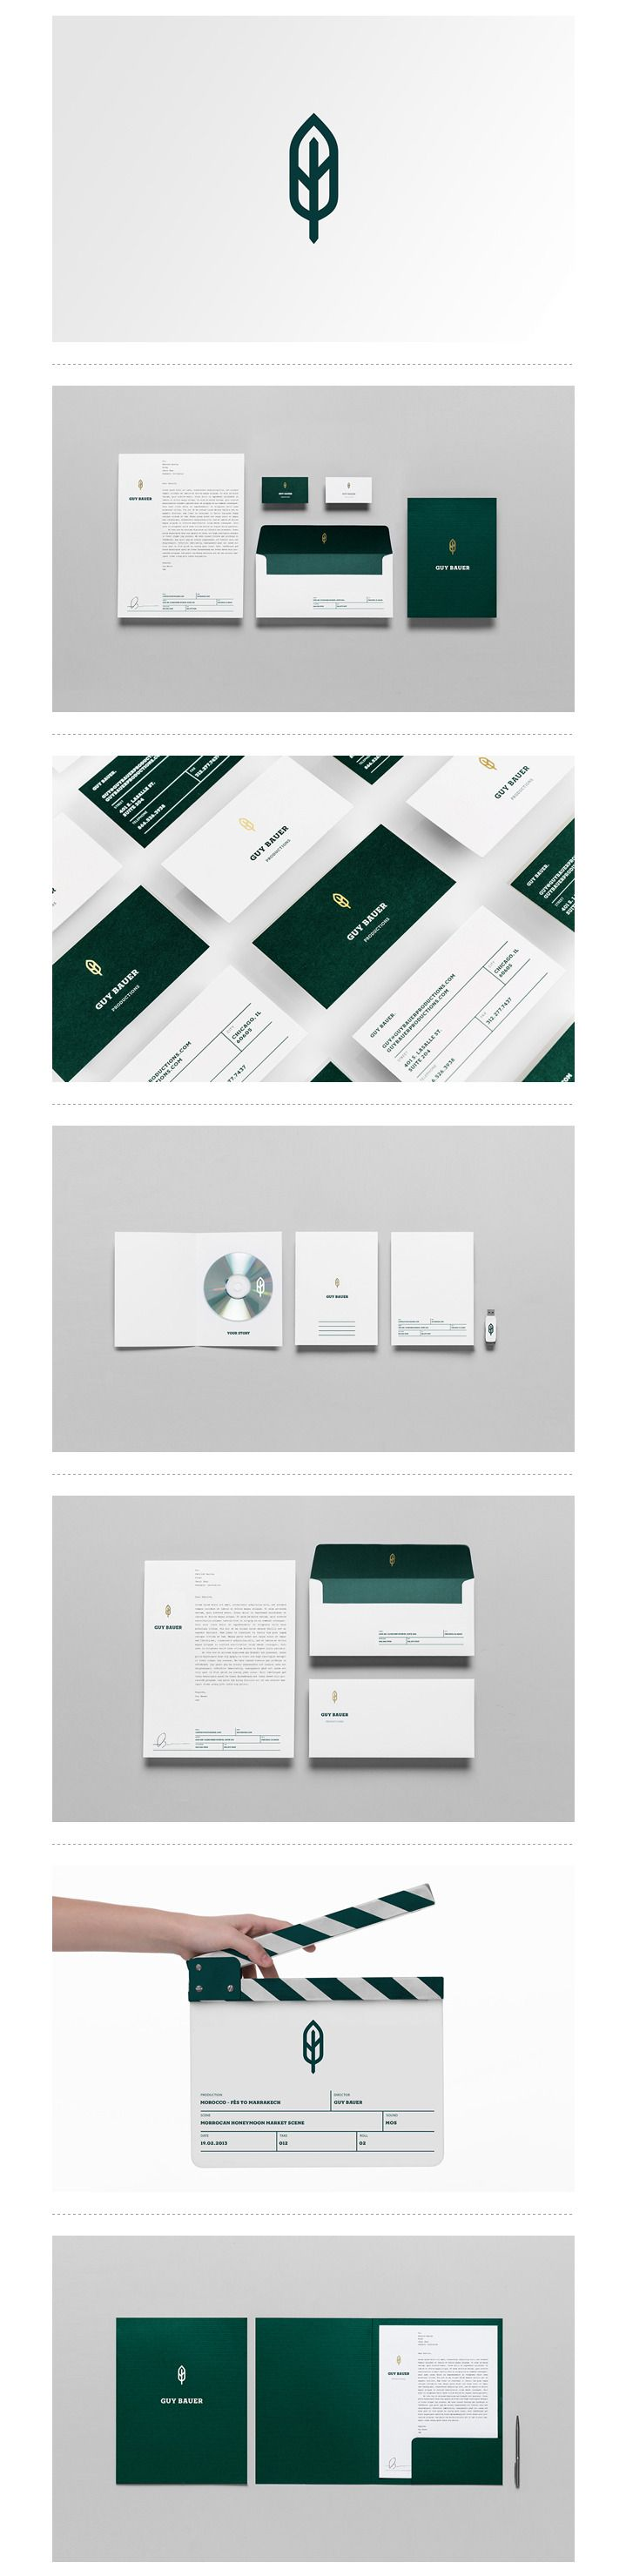 Guy Bauer Productions | #stationary #corporate #design #corporatedesign #logo…